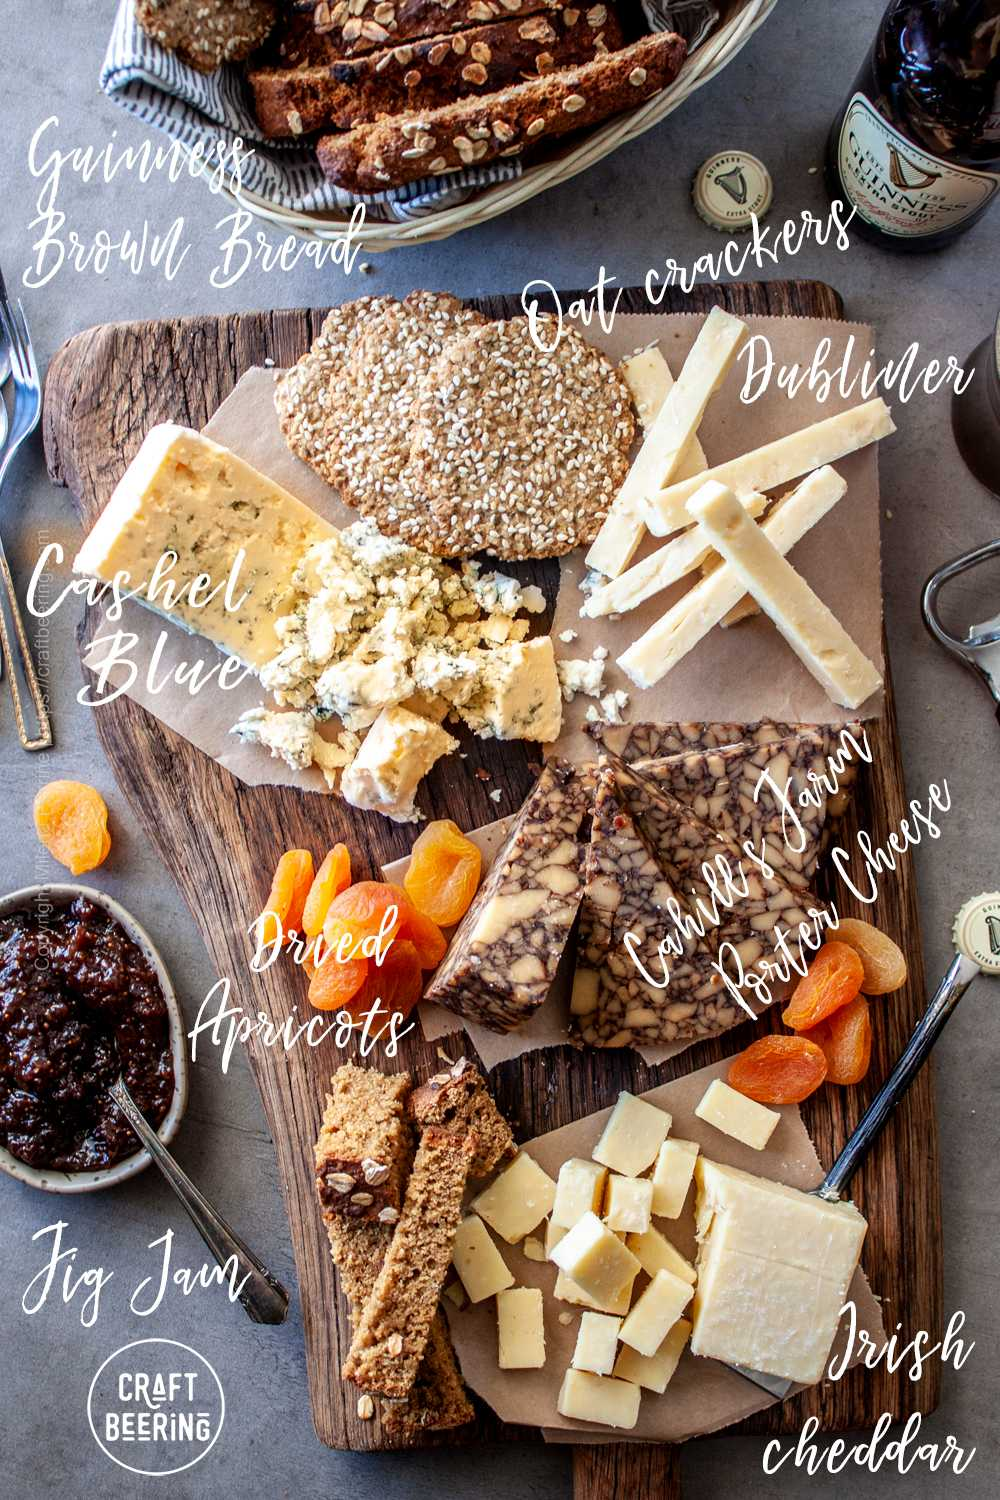 Irish cheese board with Cashel blue, Dubliner, Irish cheddar and Cahil's Farm cheddar with porter, accompanied by dried apricots and fig chutney.